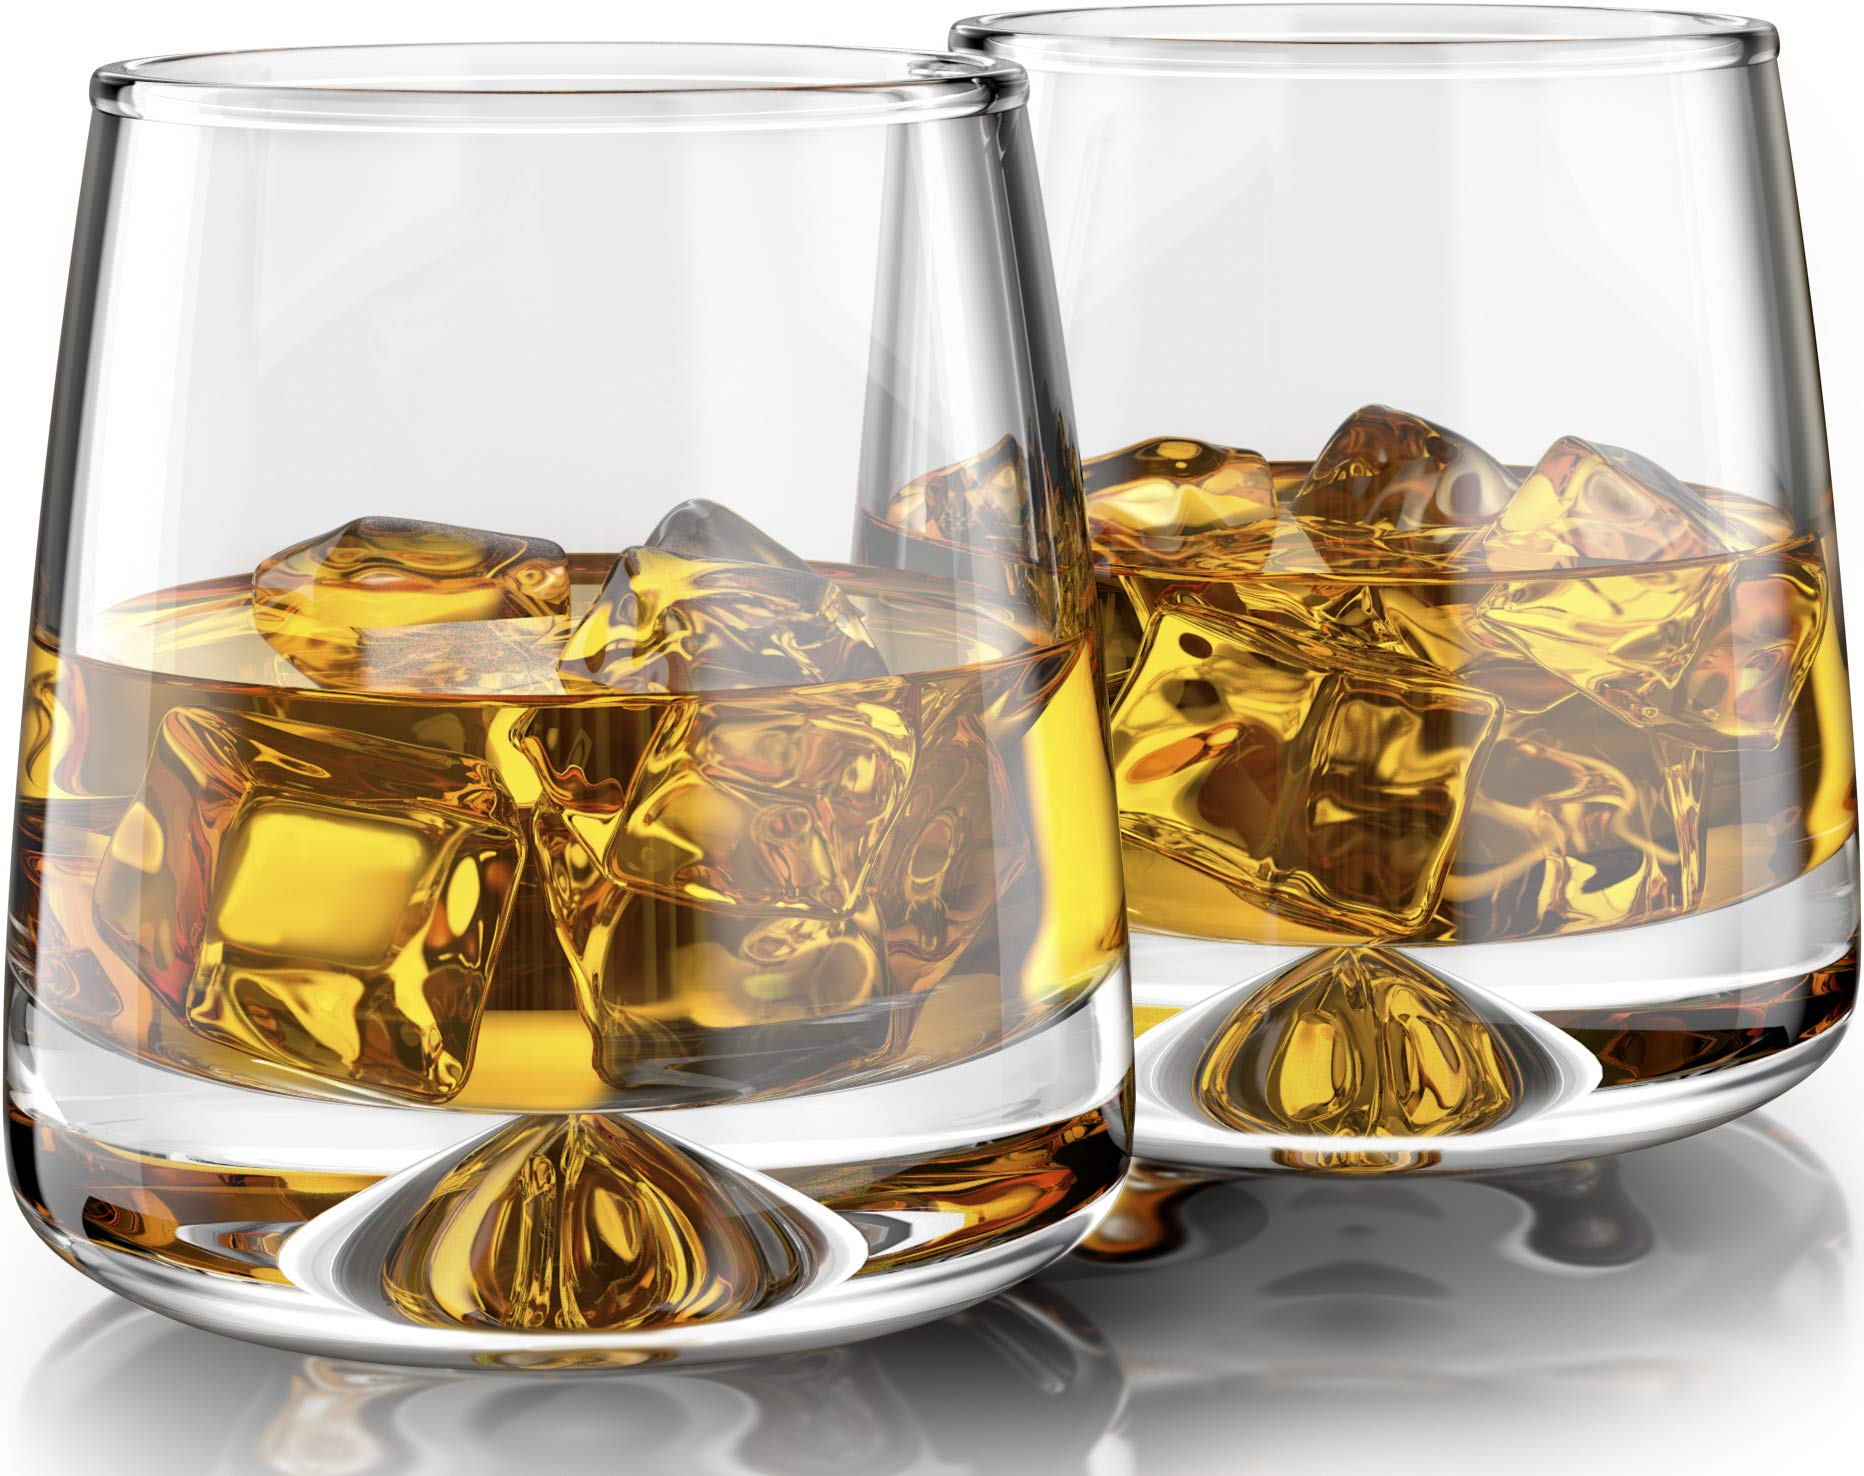 Premium Whiskey Glasses - Large - 12oz Set of 2 - Lead Free Hand Blown Crystal - Thick Weighted Base - Seamless Design - Perfect for Scotch, Bourbon, Manhattans, Old Fashioned, Cocktails.